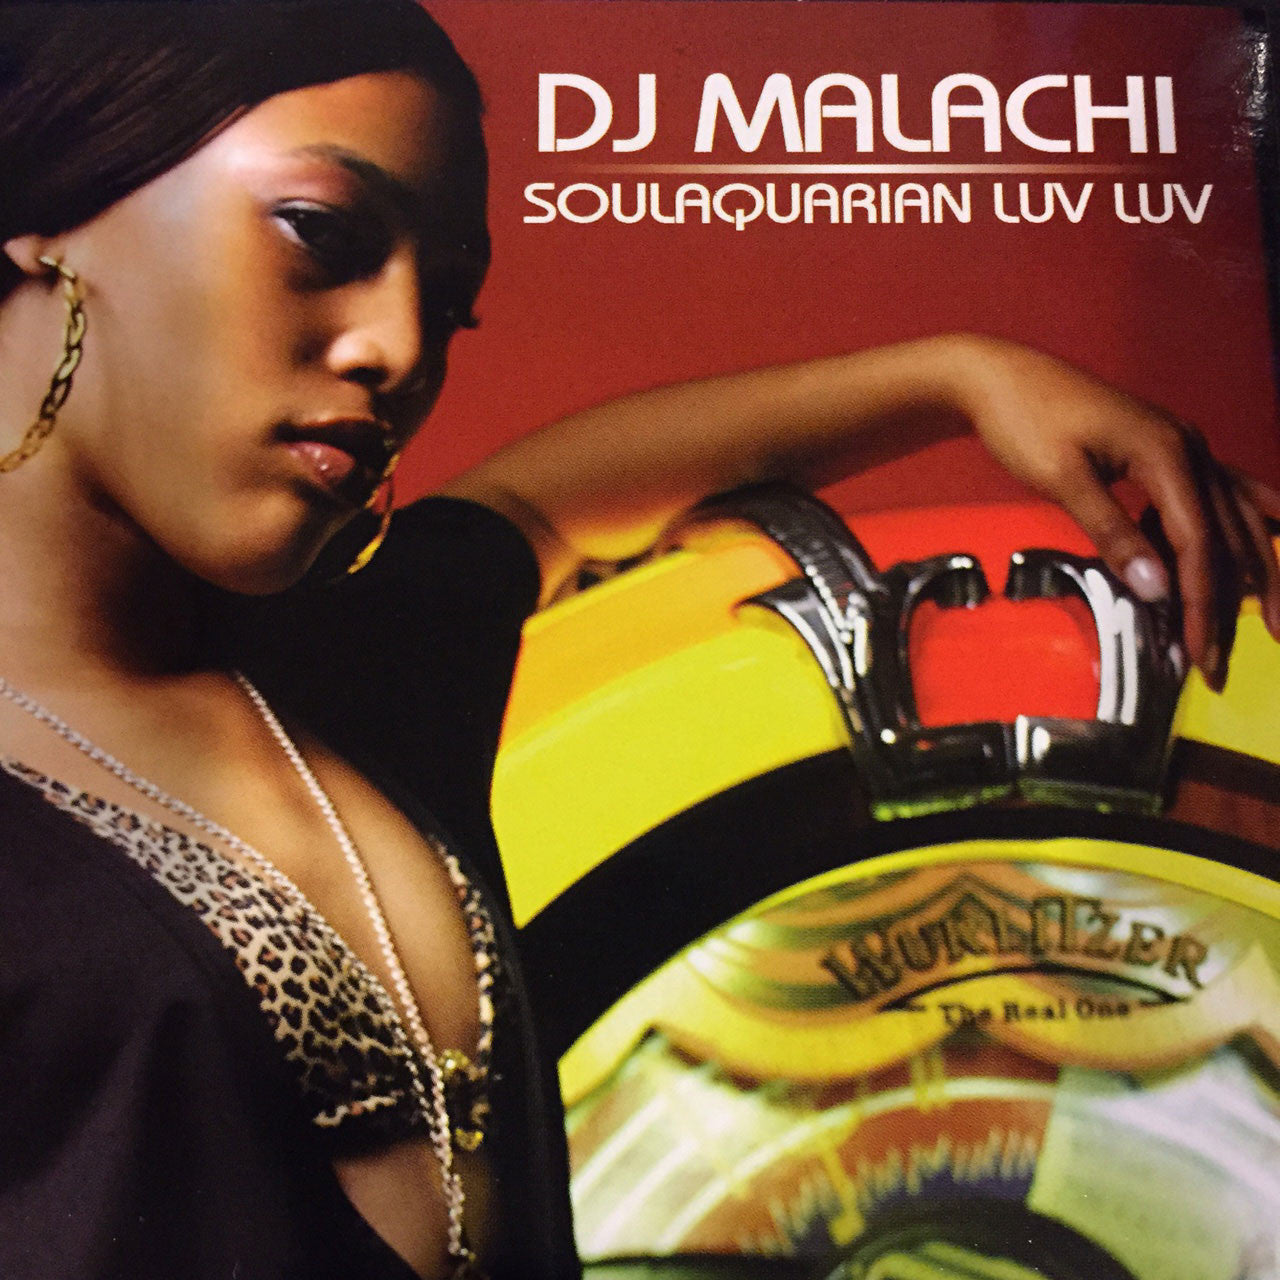 DJ Malachi - Soulaquarian Luv Luv, (2 Disc) Mixed CD